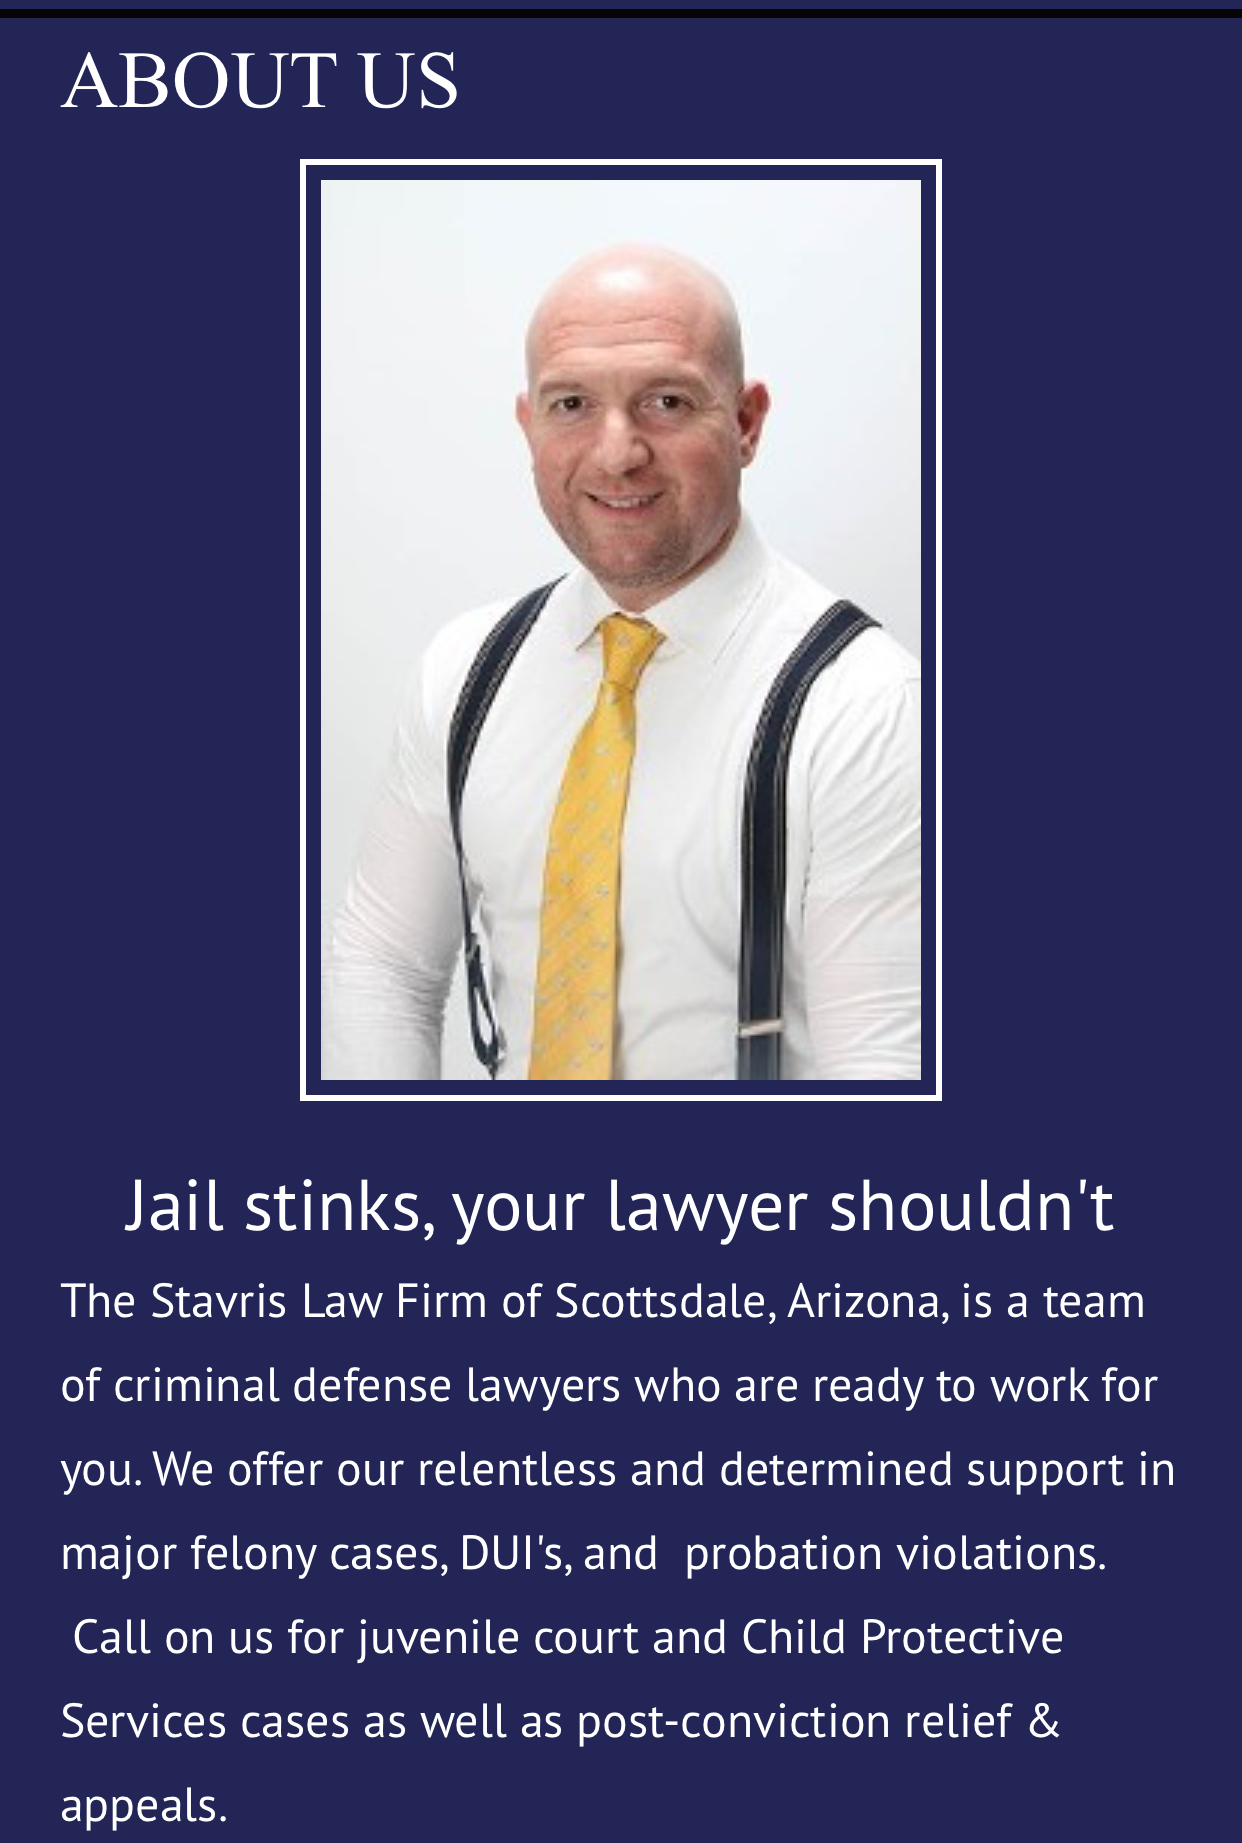 The Stavris Law Firm